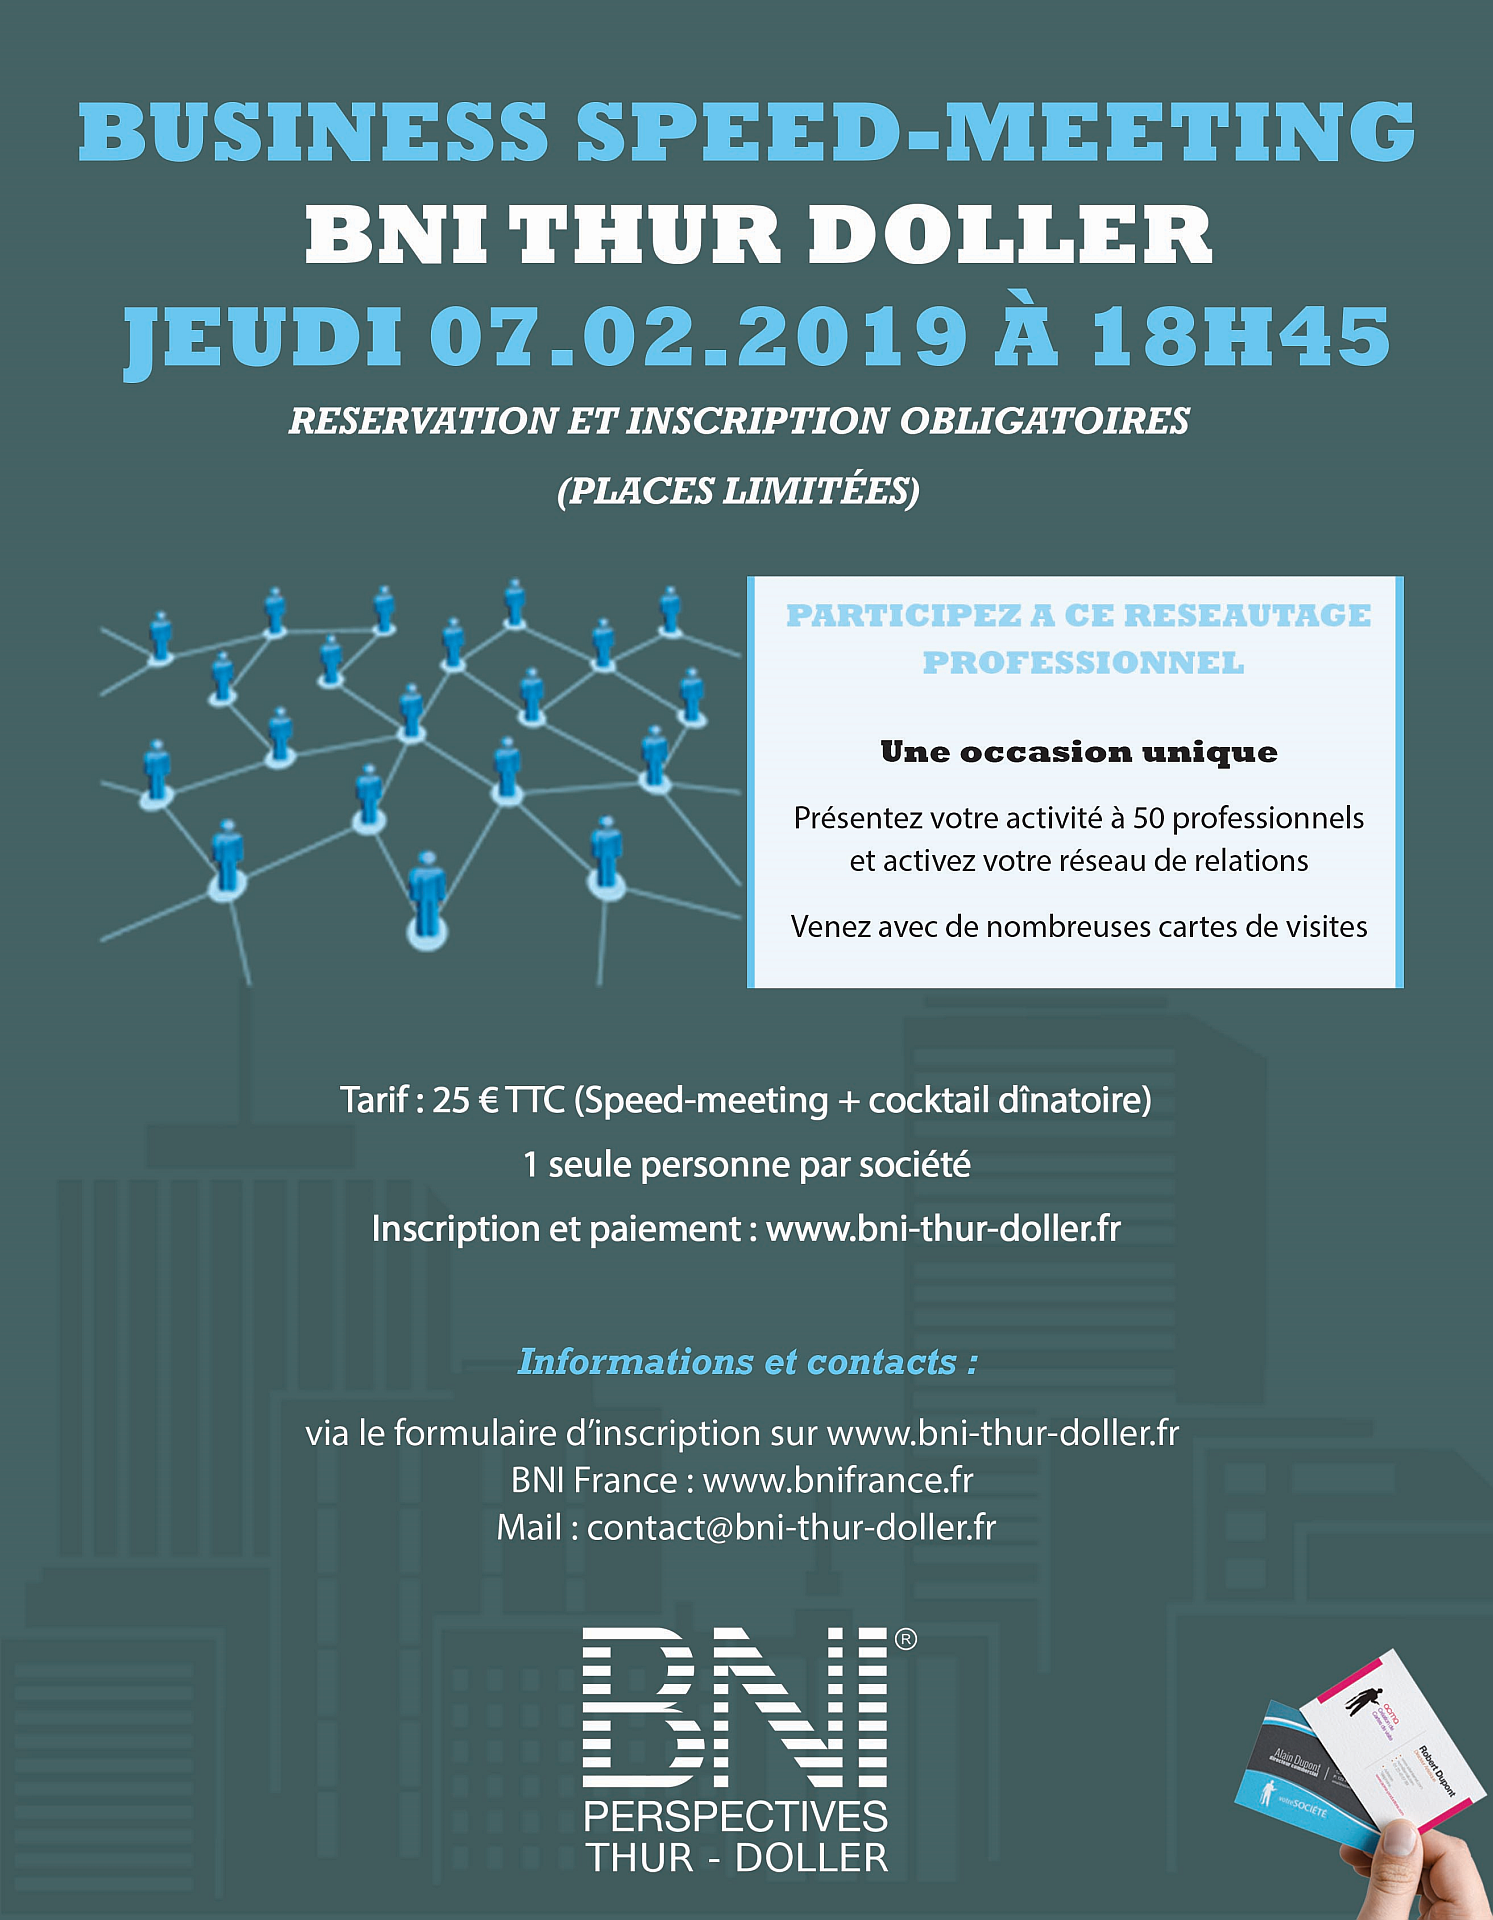 Speed-Meeting - BNI Thur Doller - Réseau d'affaires - 07/02/2019